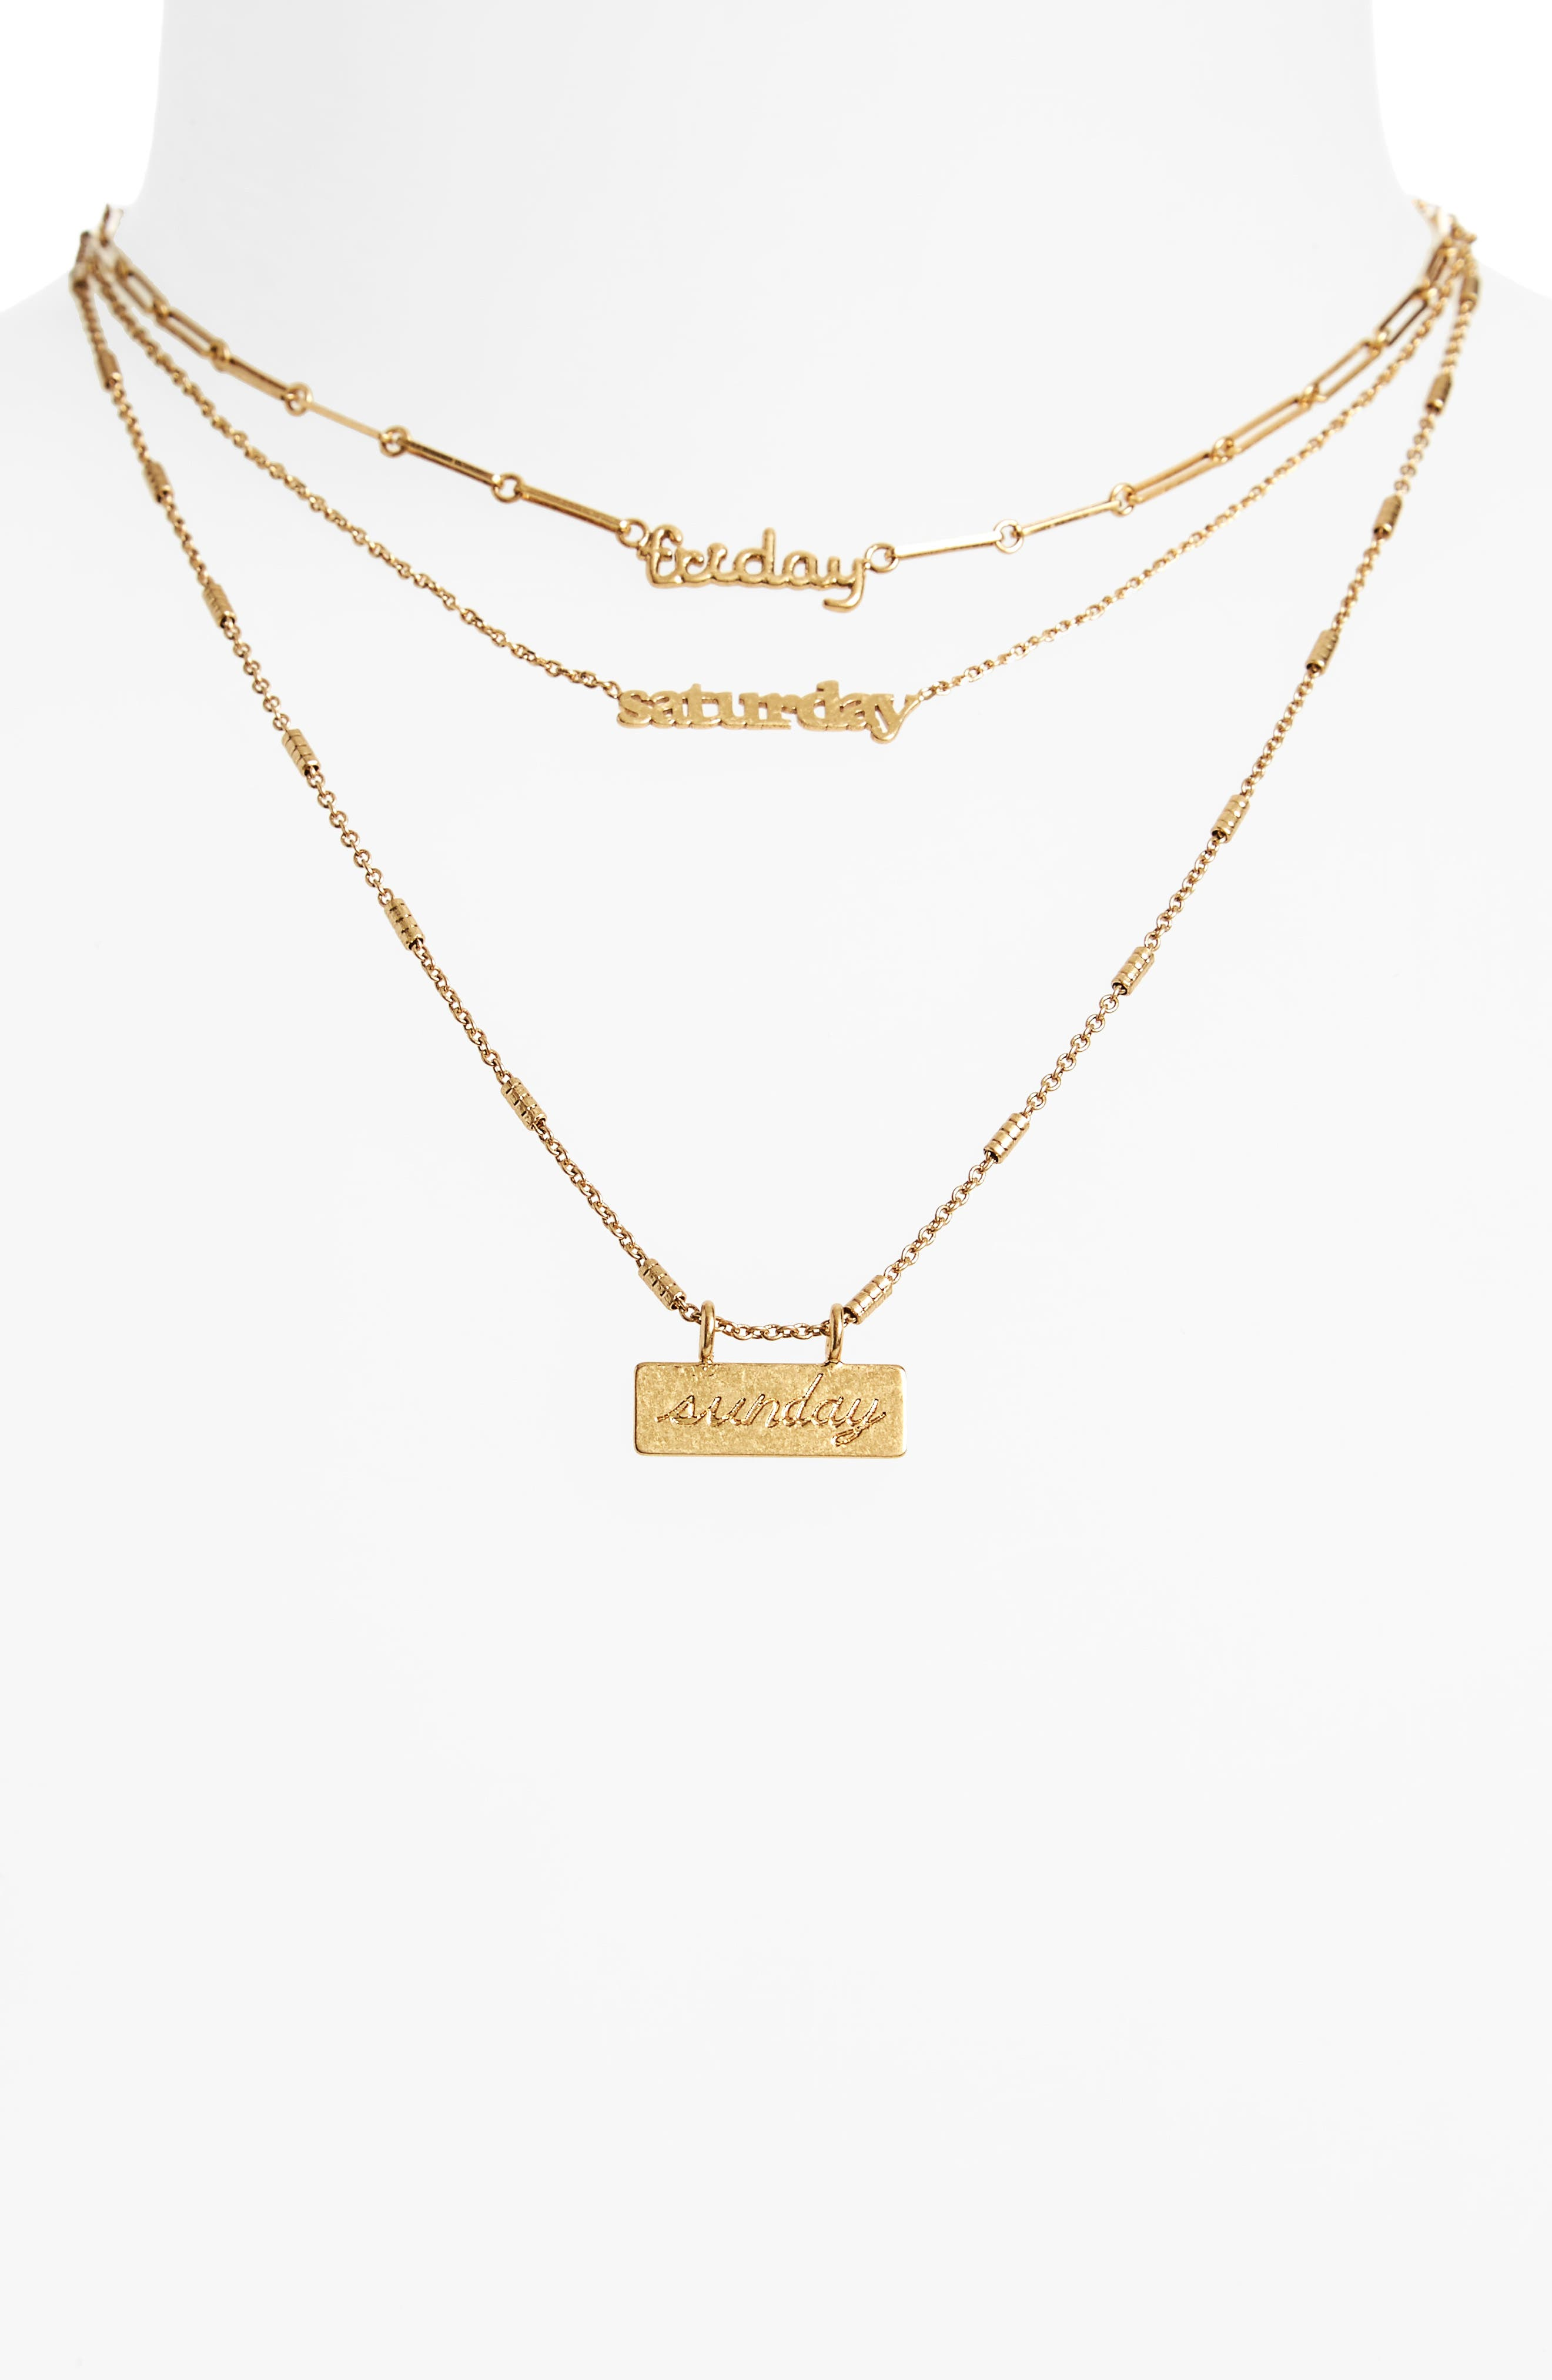 Madewell Friday Saturday Sunday Necklace Set